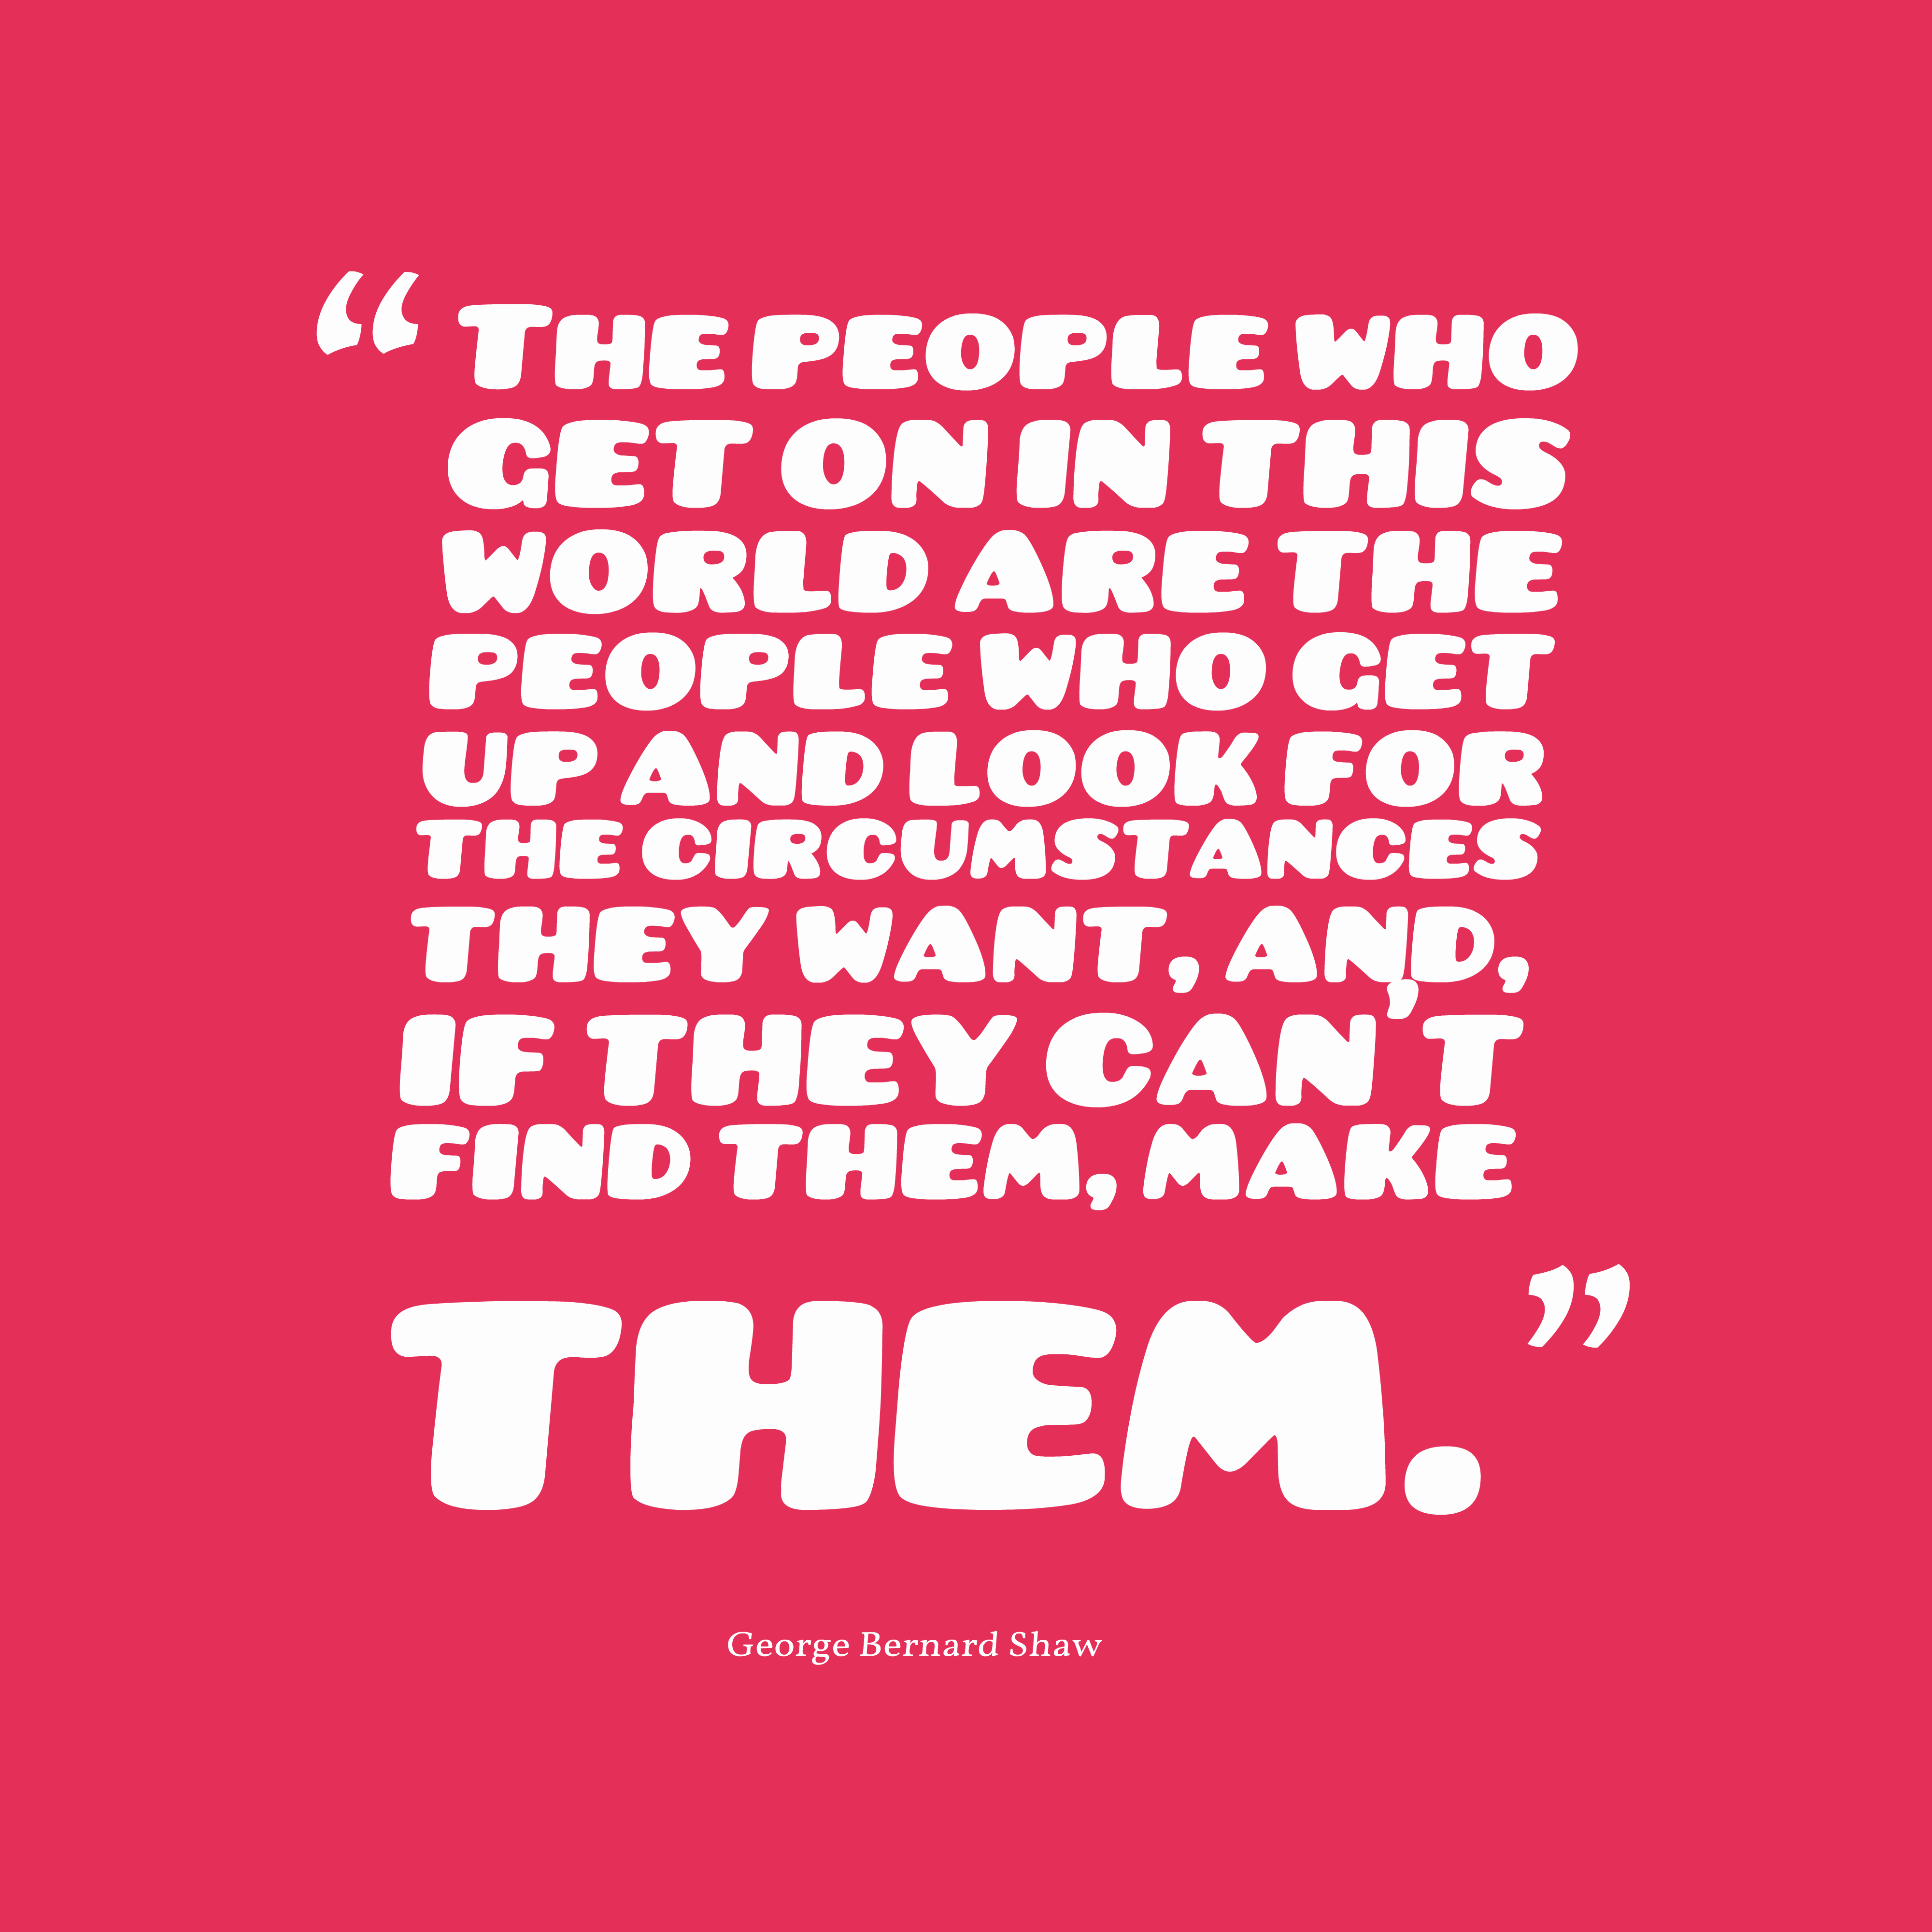 Quotes image of The people who get on in this world are the people who get up and look for the circumstances they want, and, if they can't find them, make them.